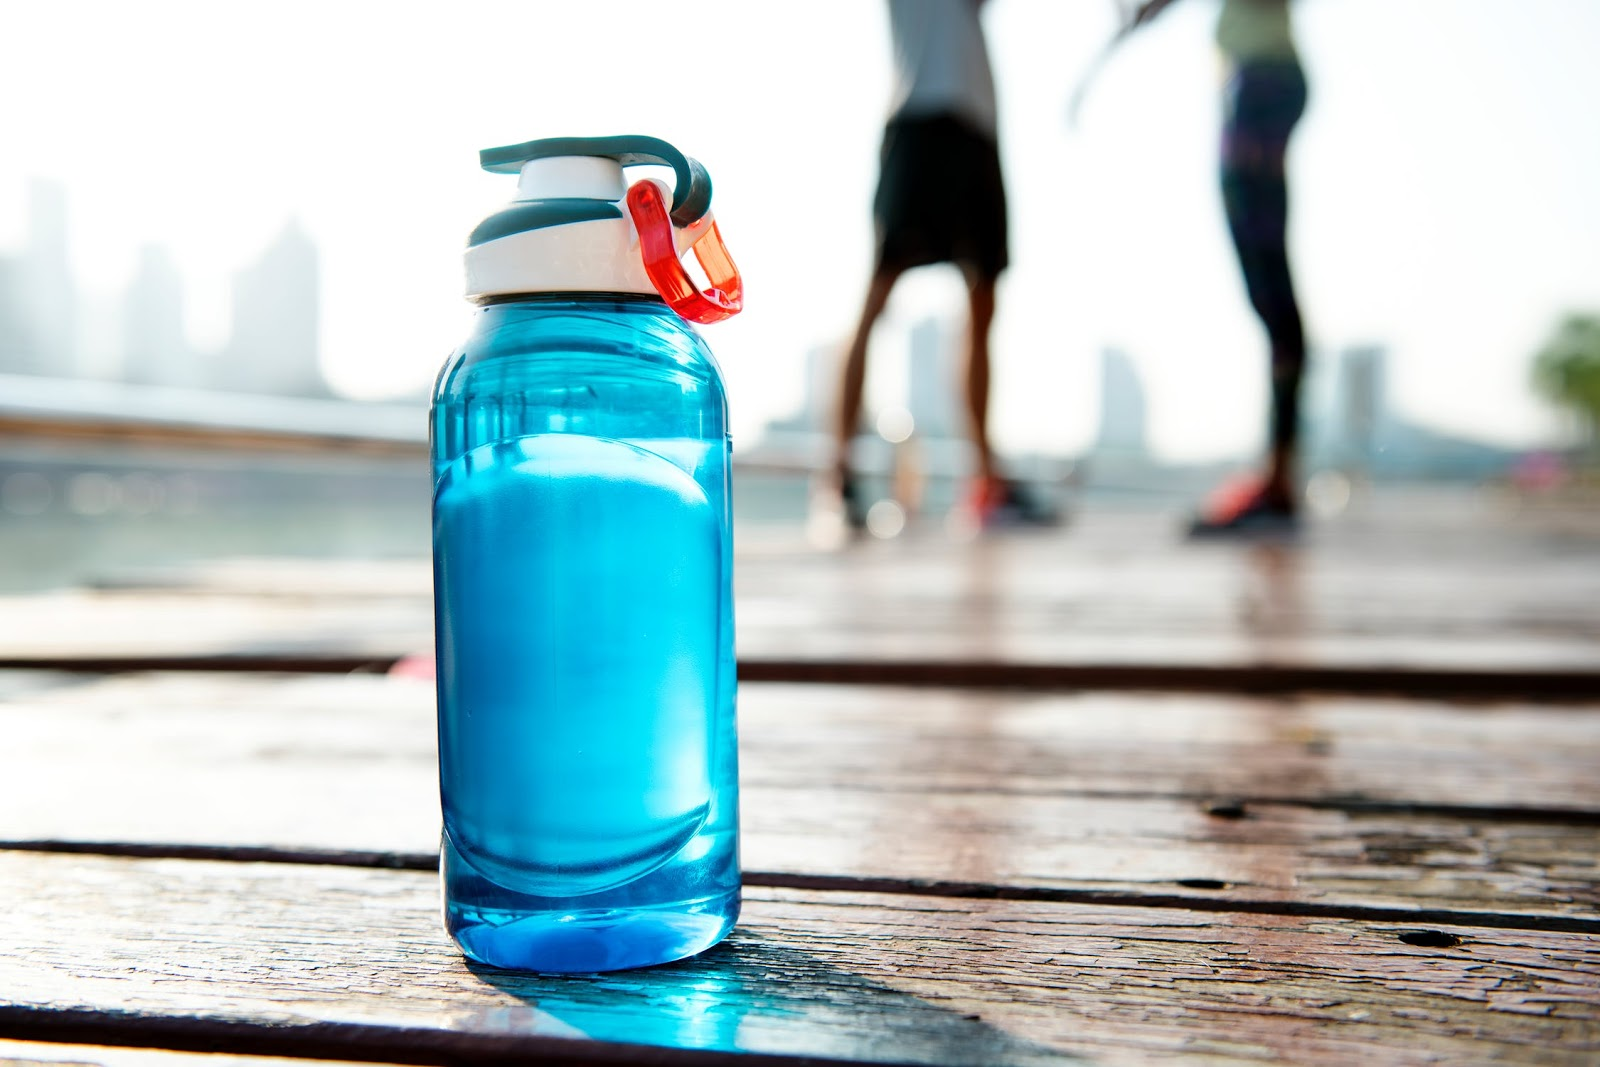 A reuseable and eco-friendly water bottle filled with Goodfor filtered water